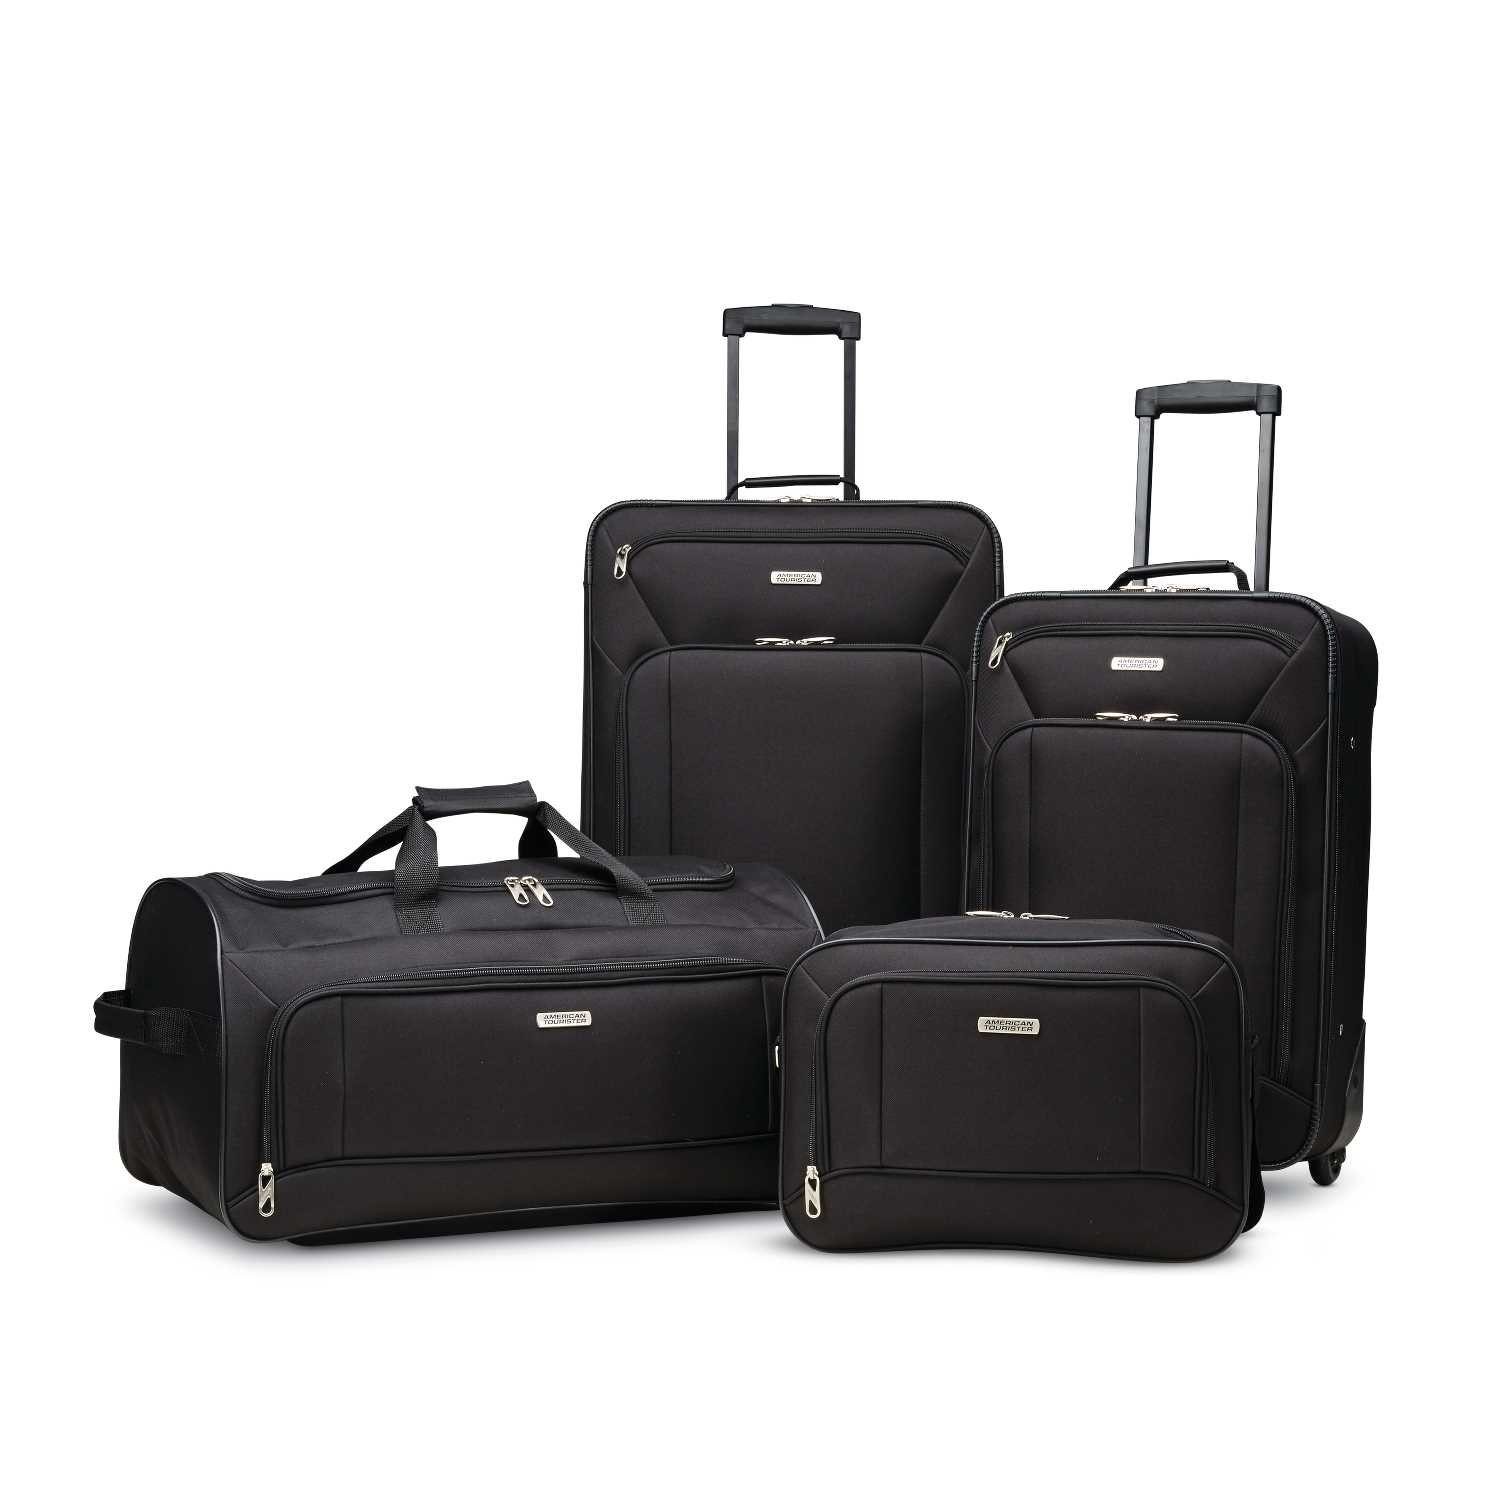 American Tourister 4-Piece Set, Black by American Tourister